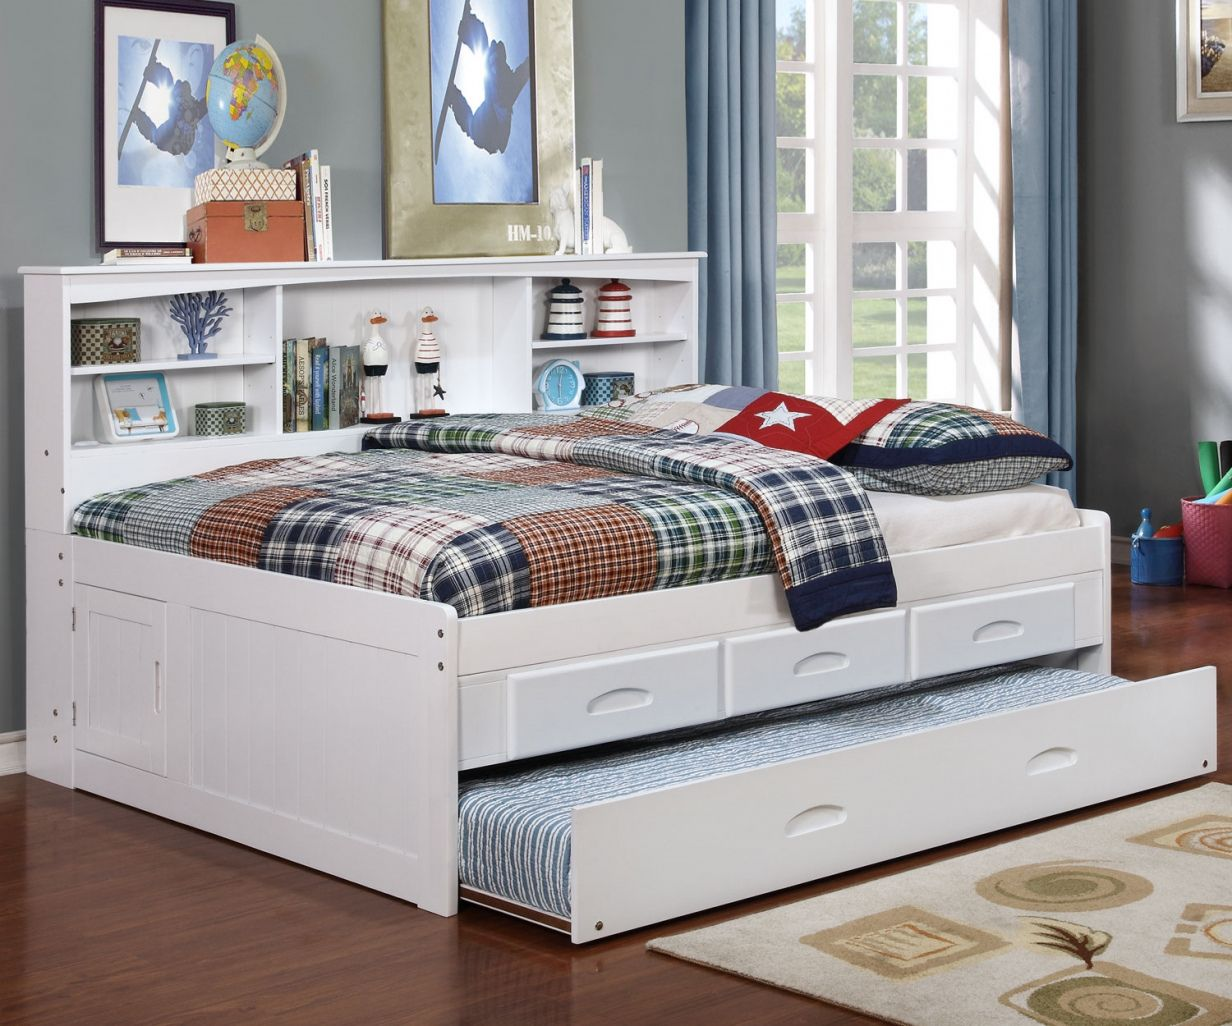 Our Cambridge Captain S Day Bed With Trundle Is A Great Choice For E Saving In Your Kids Room The White Bookcase Includes